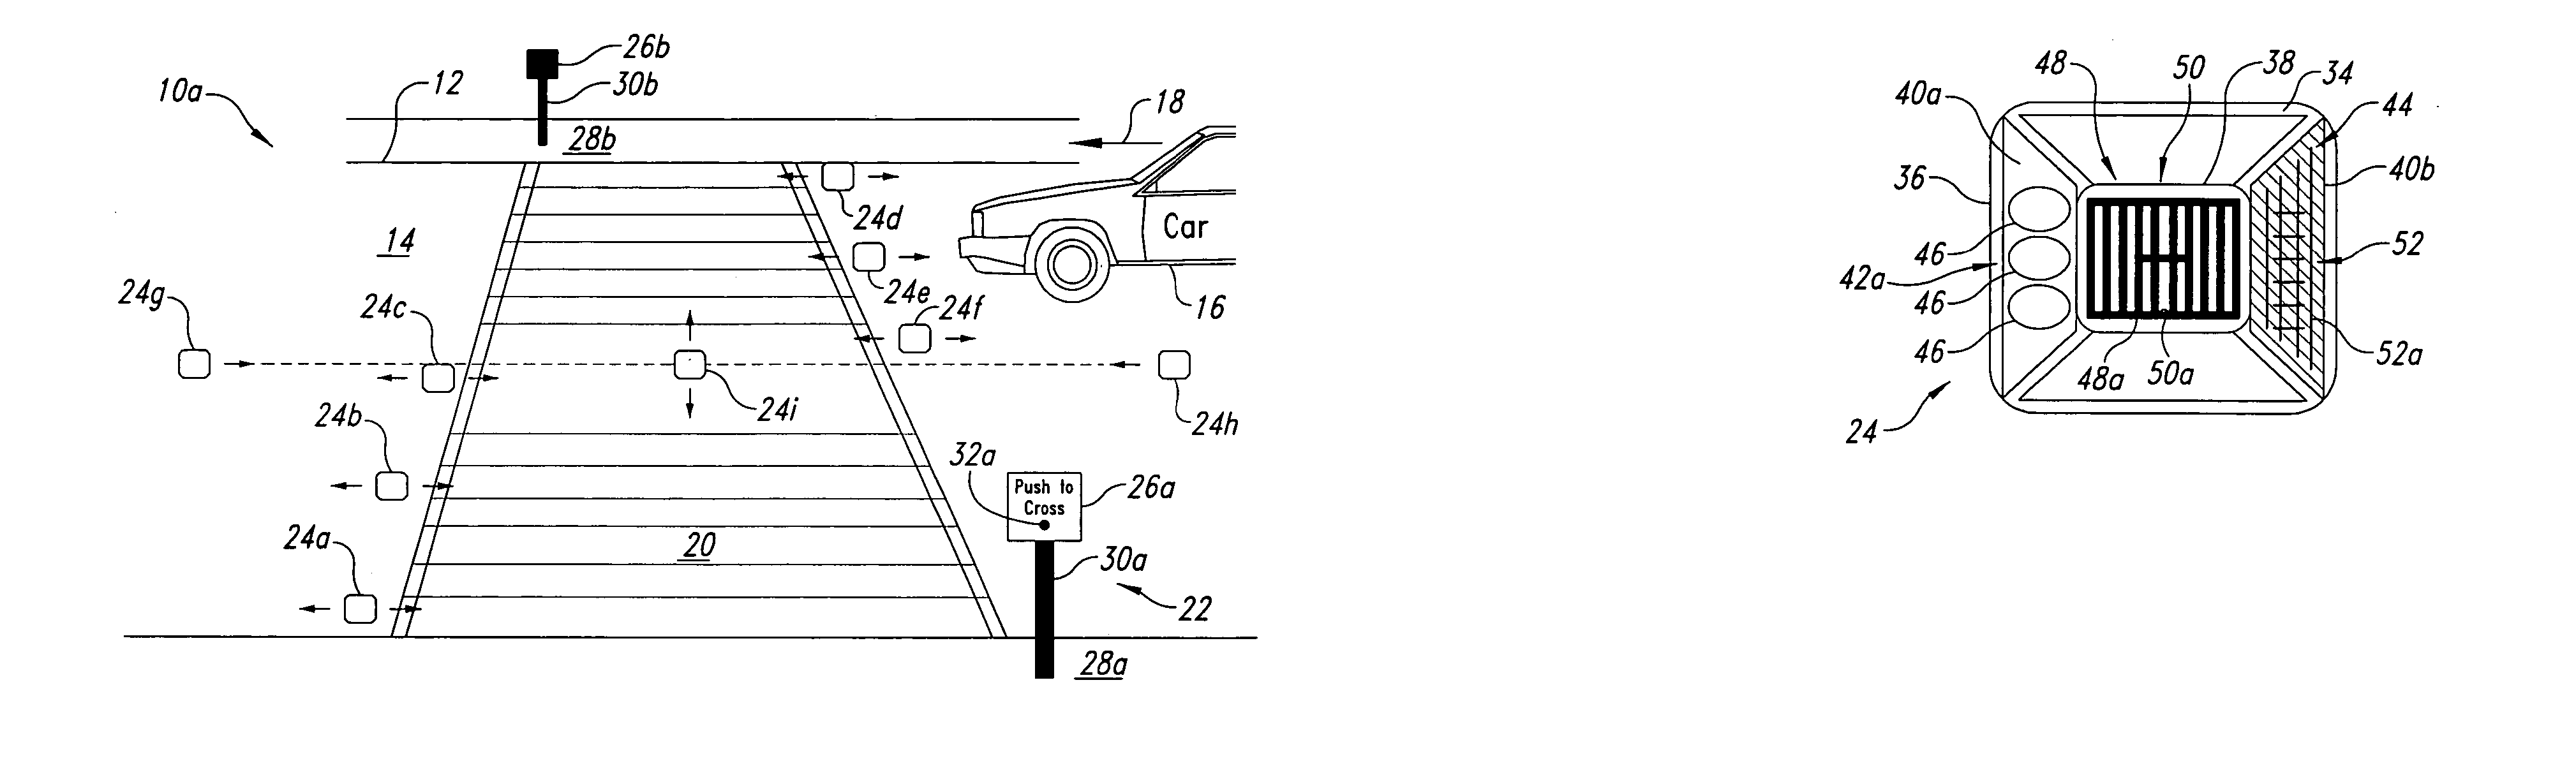 Patent Us20050270175 Methods Systems And Devices Related To Road Ir Remote Control Extender Circuit Diagram Projects Nonstop Drawing